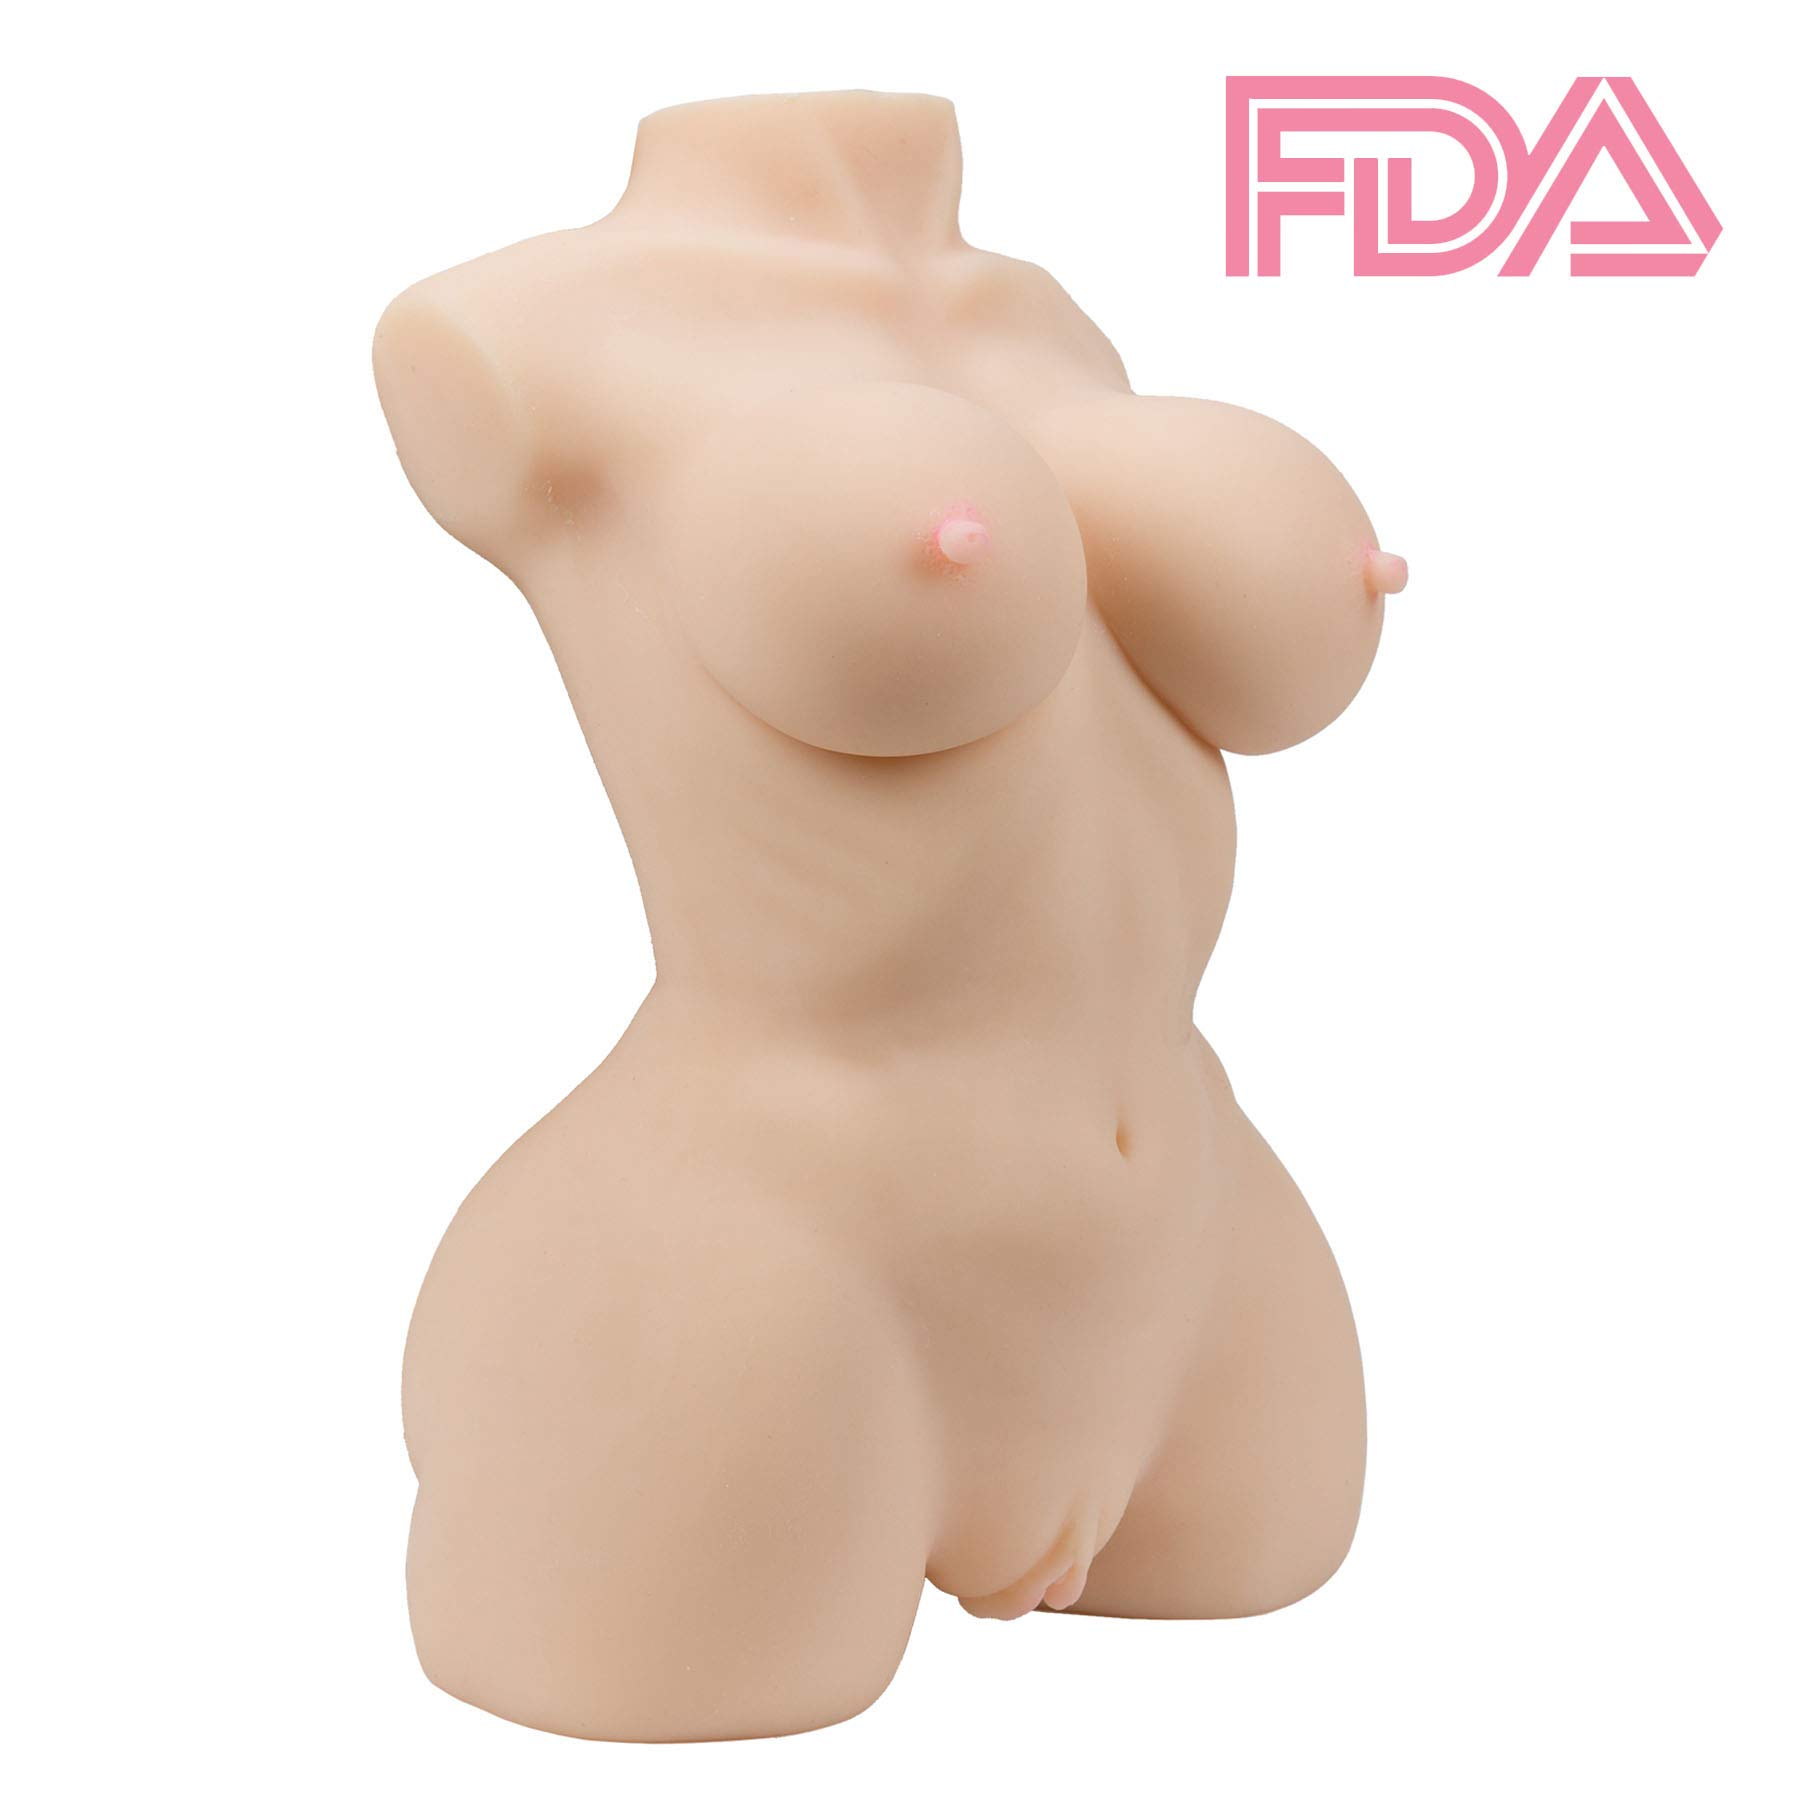 Y-NOT 3D Realistic Lifelike Sex Doll Male Masturbator Sex Toy with Heating Rod, for Realistic Anal, Breast, Vagina Sex, High Quality Silicone Flesh